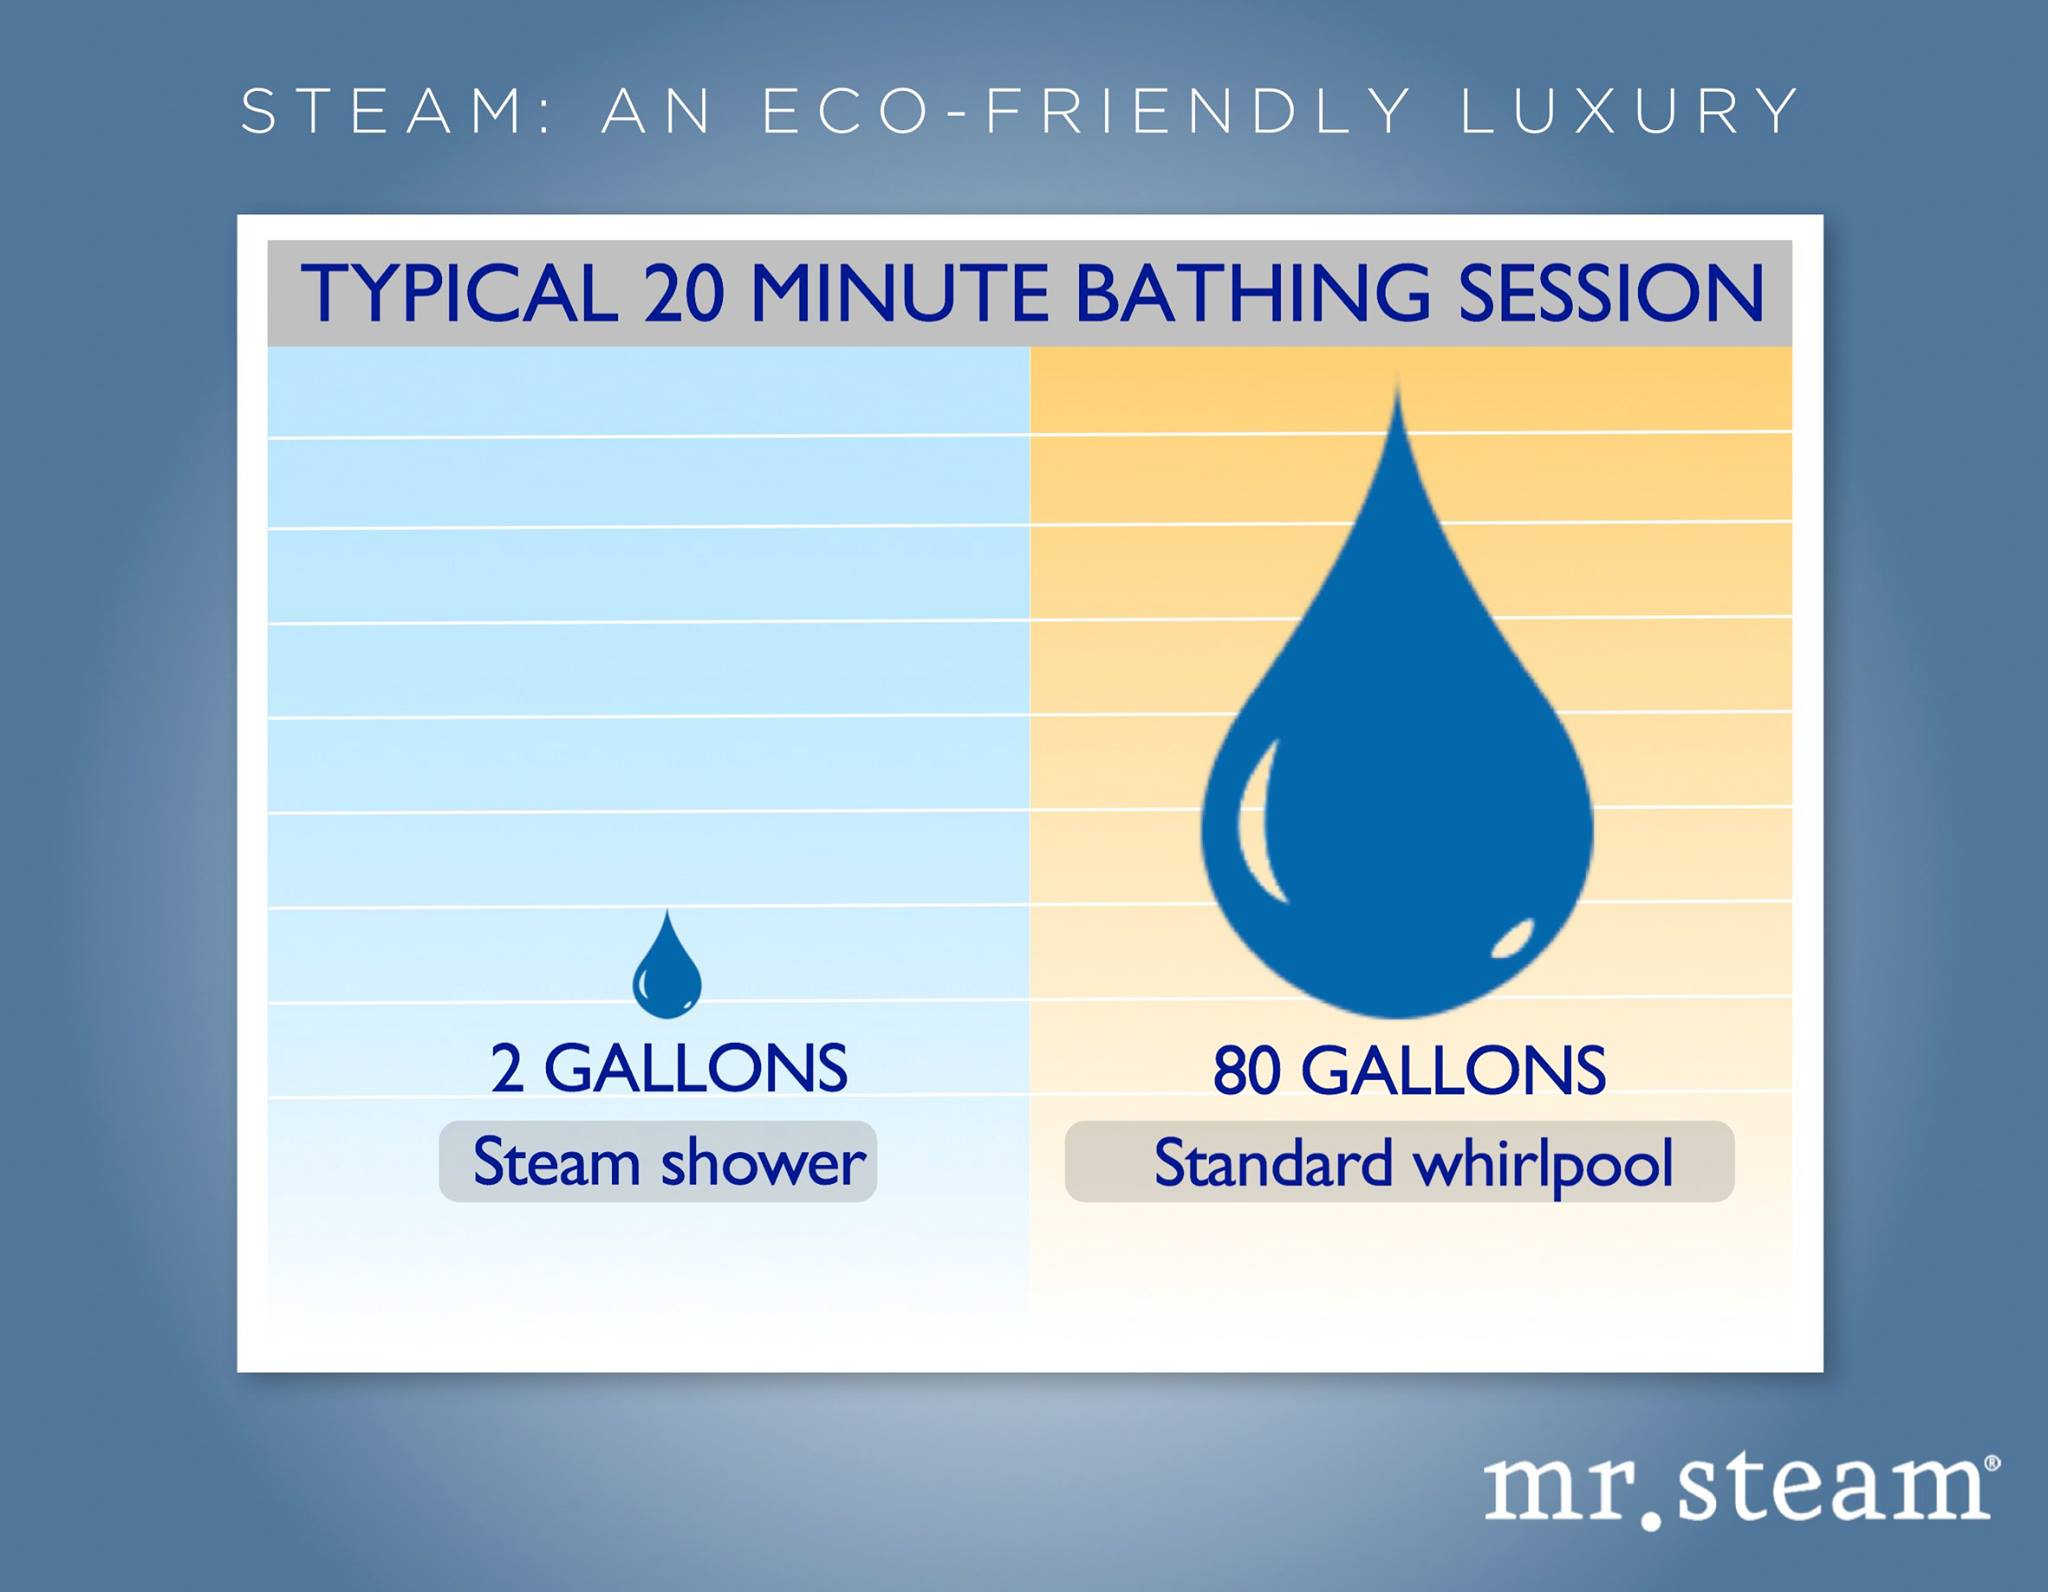 Water, Wellness and Steam Bathing